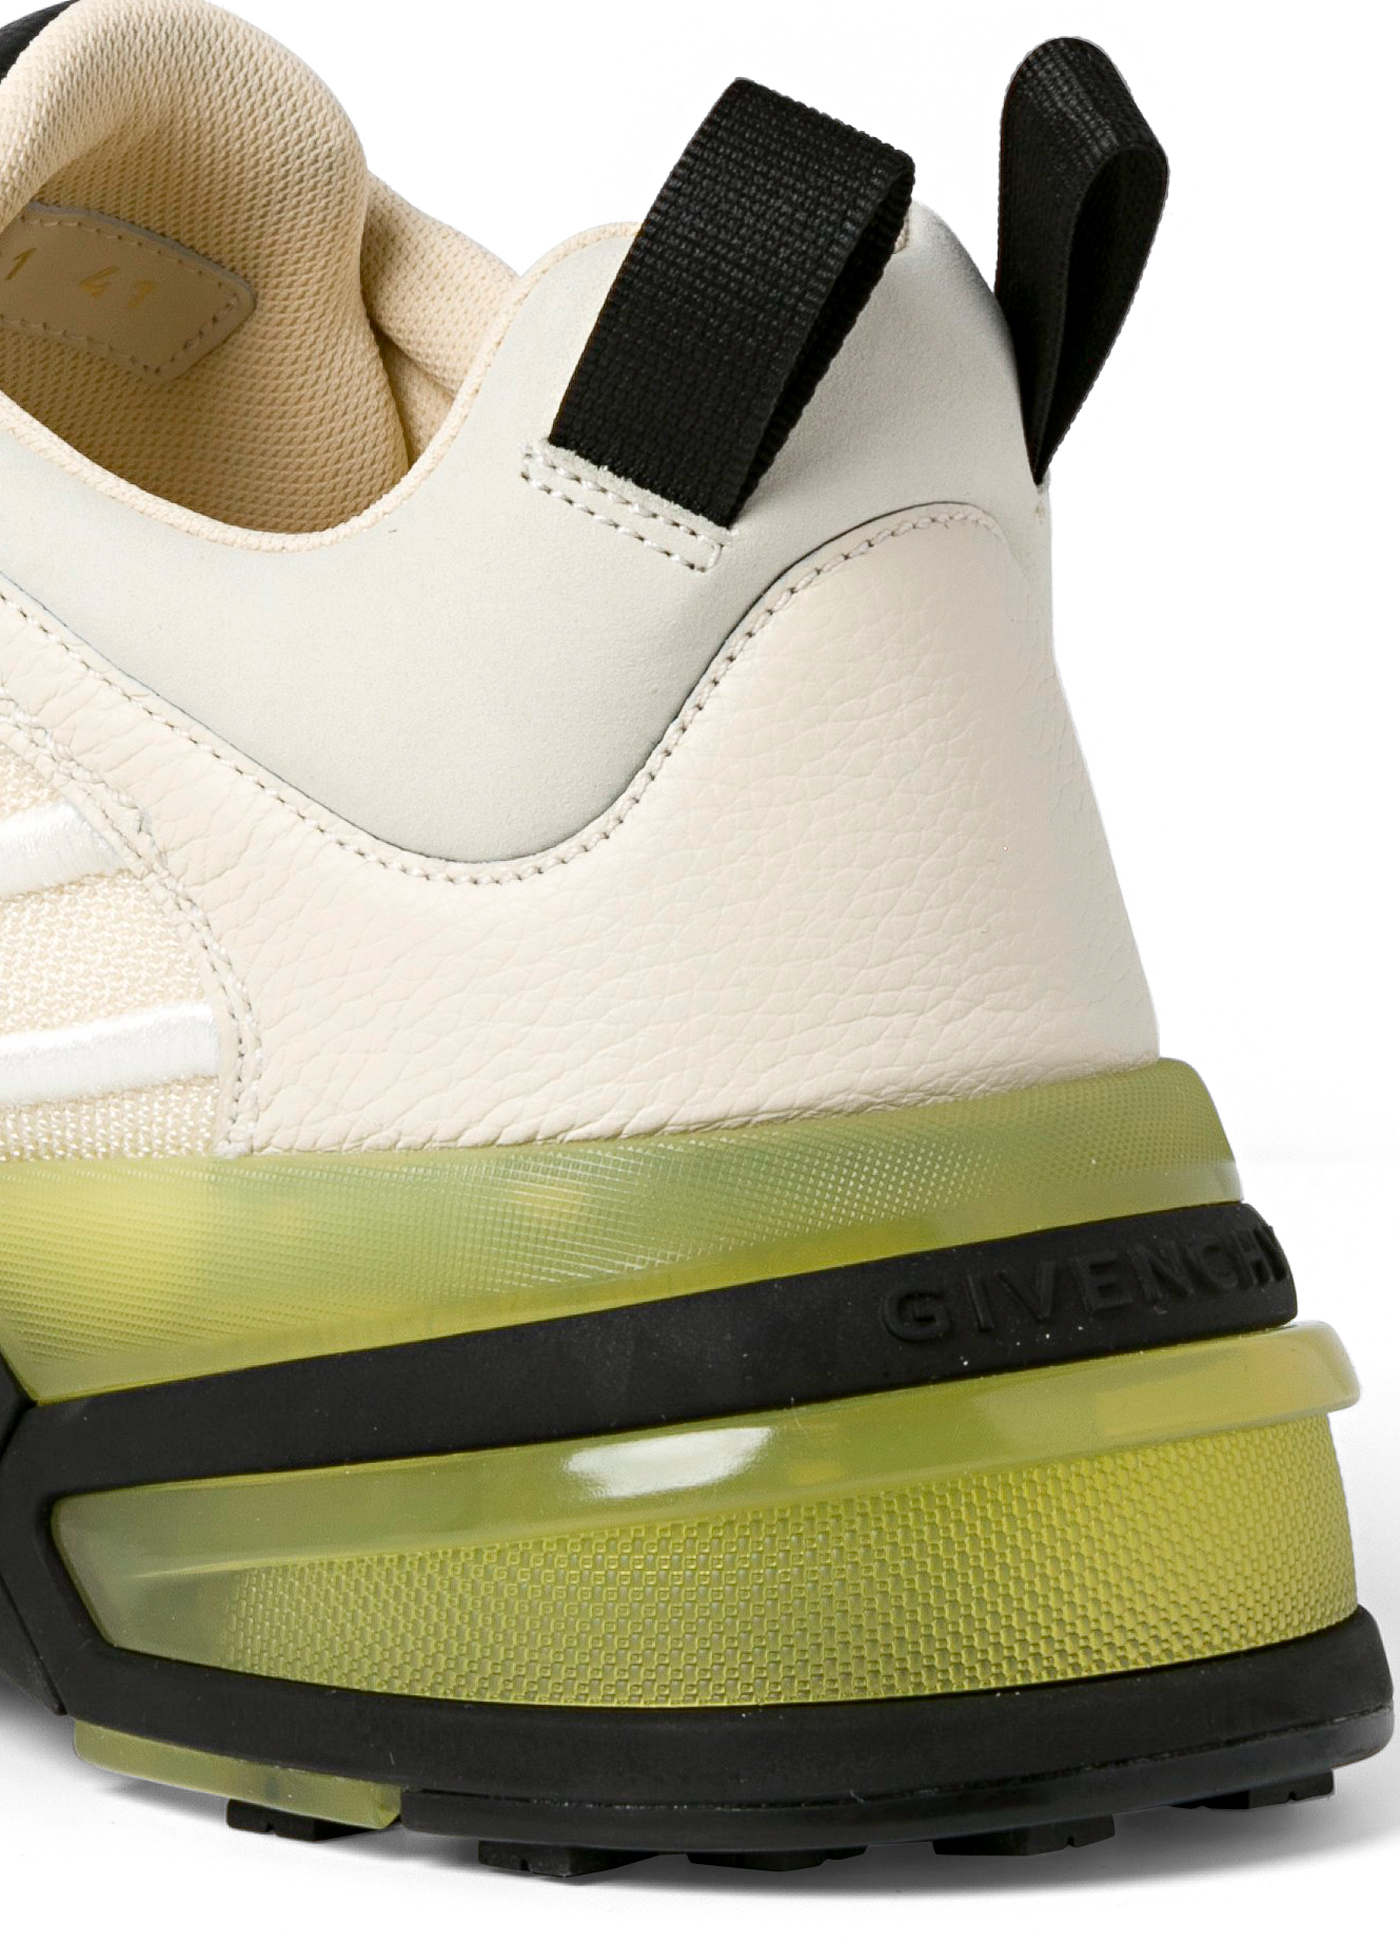 GIV 1 SNEAKERS image number 3